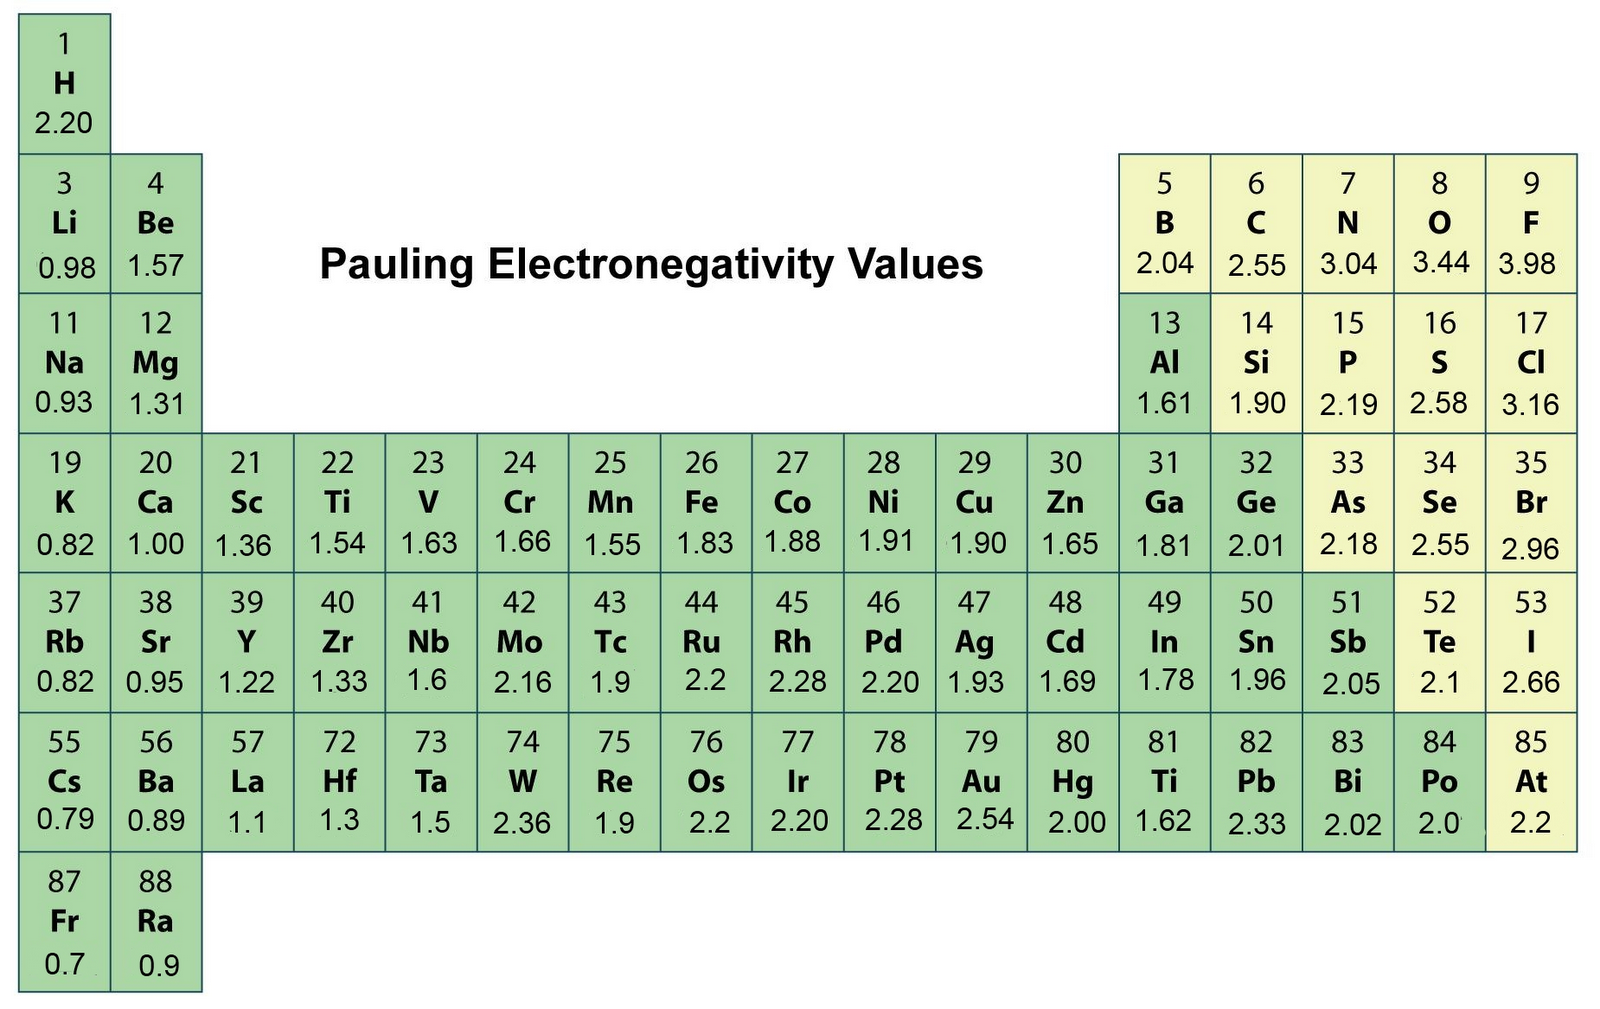 Pauling Electronegativity Table